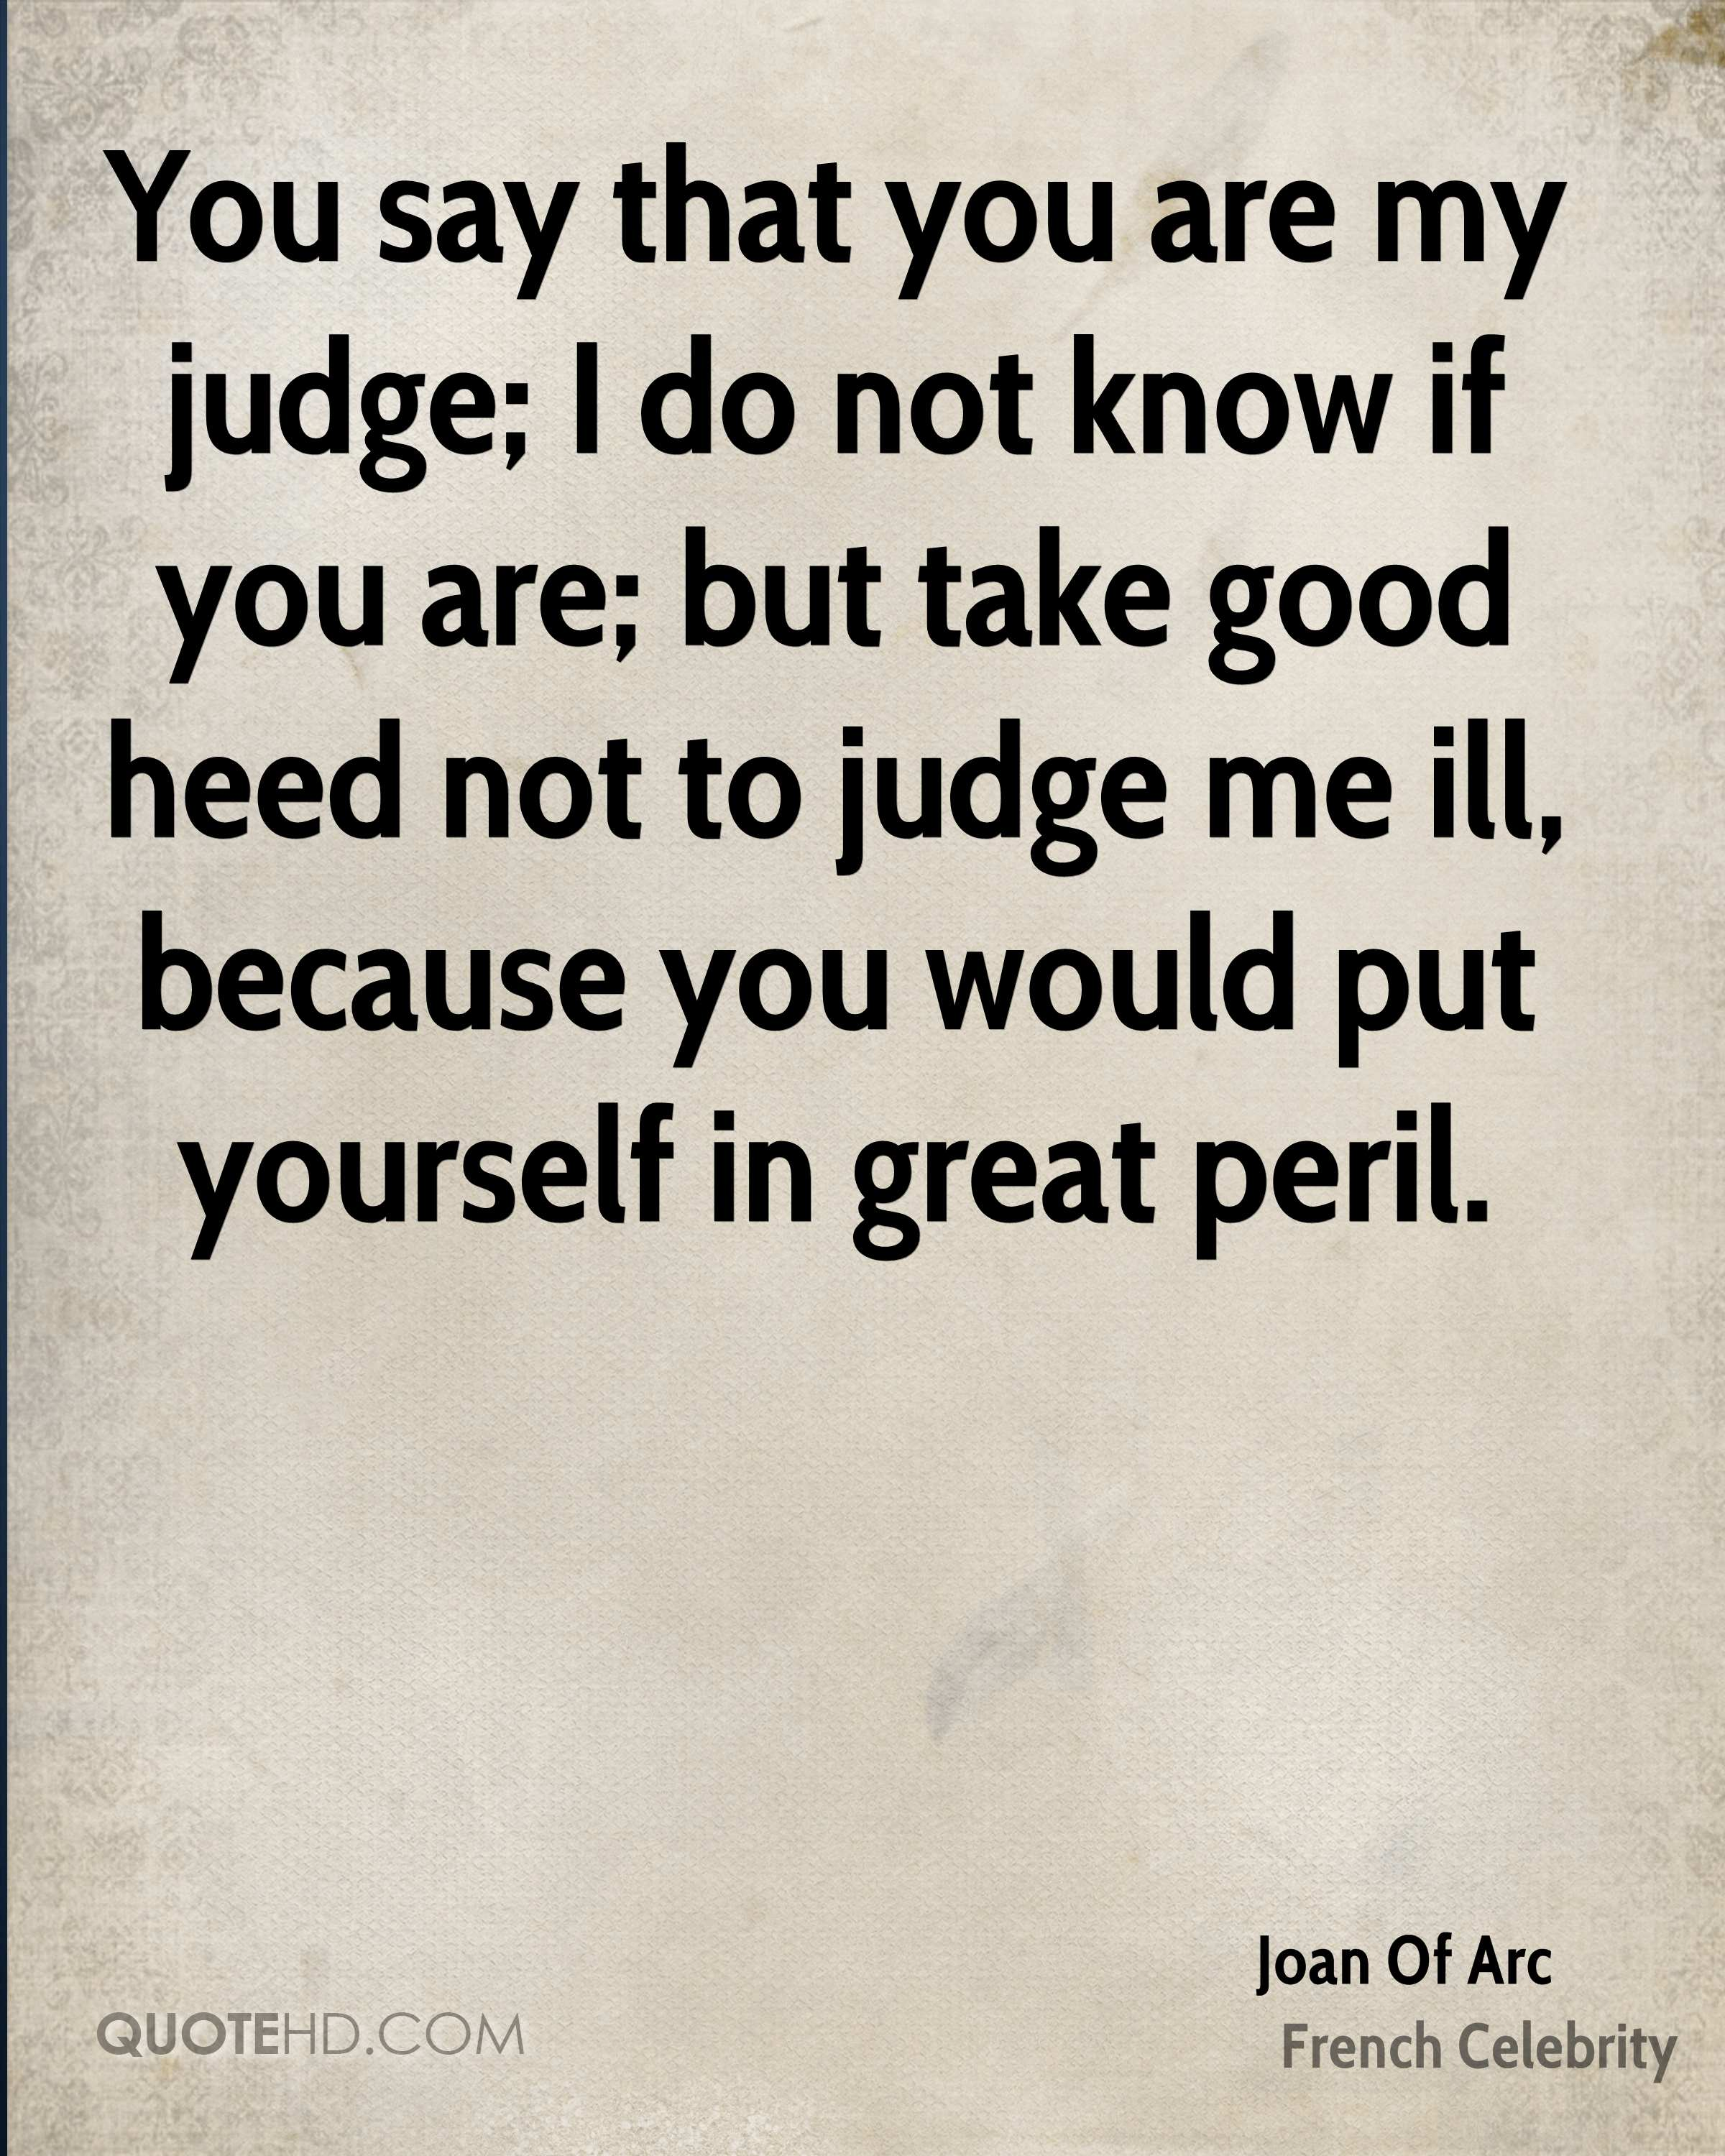 You say that you are my judge; I do not know if you are; but take good heed not to judge me ill, because you would put yourself in great peril.